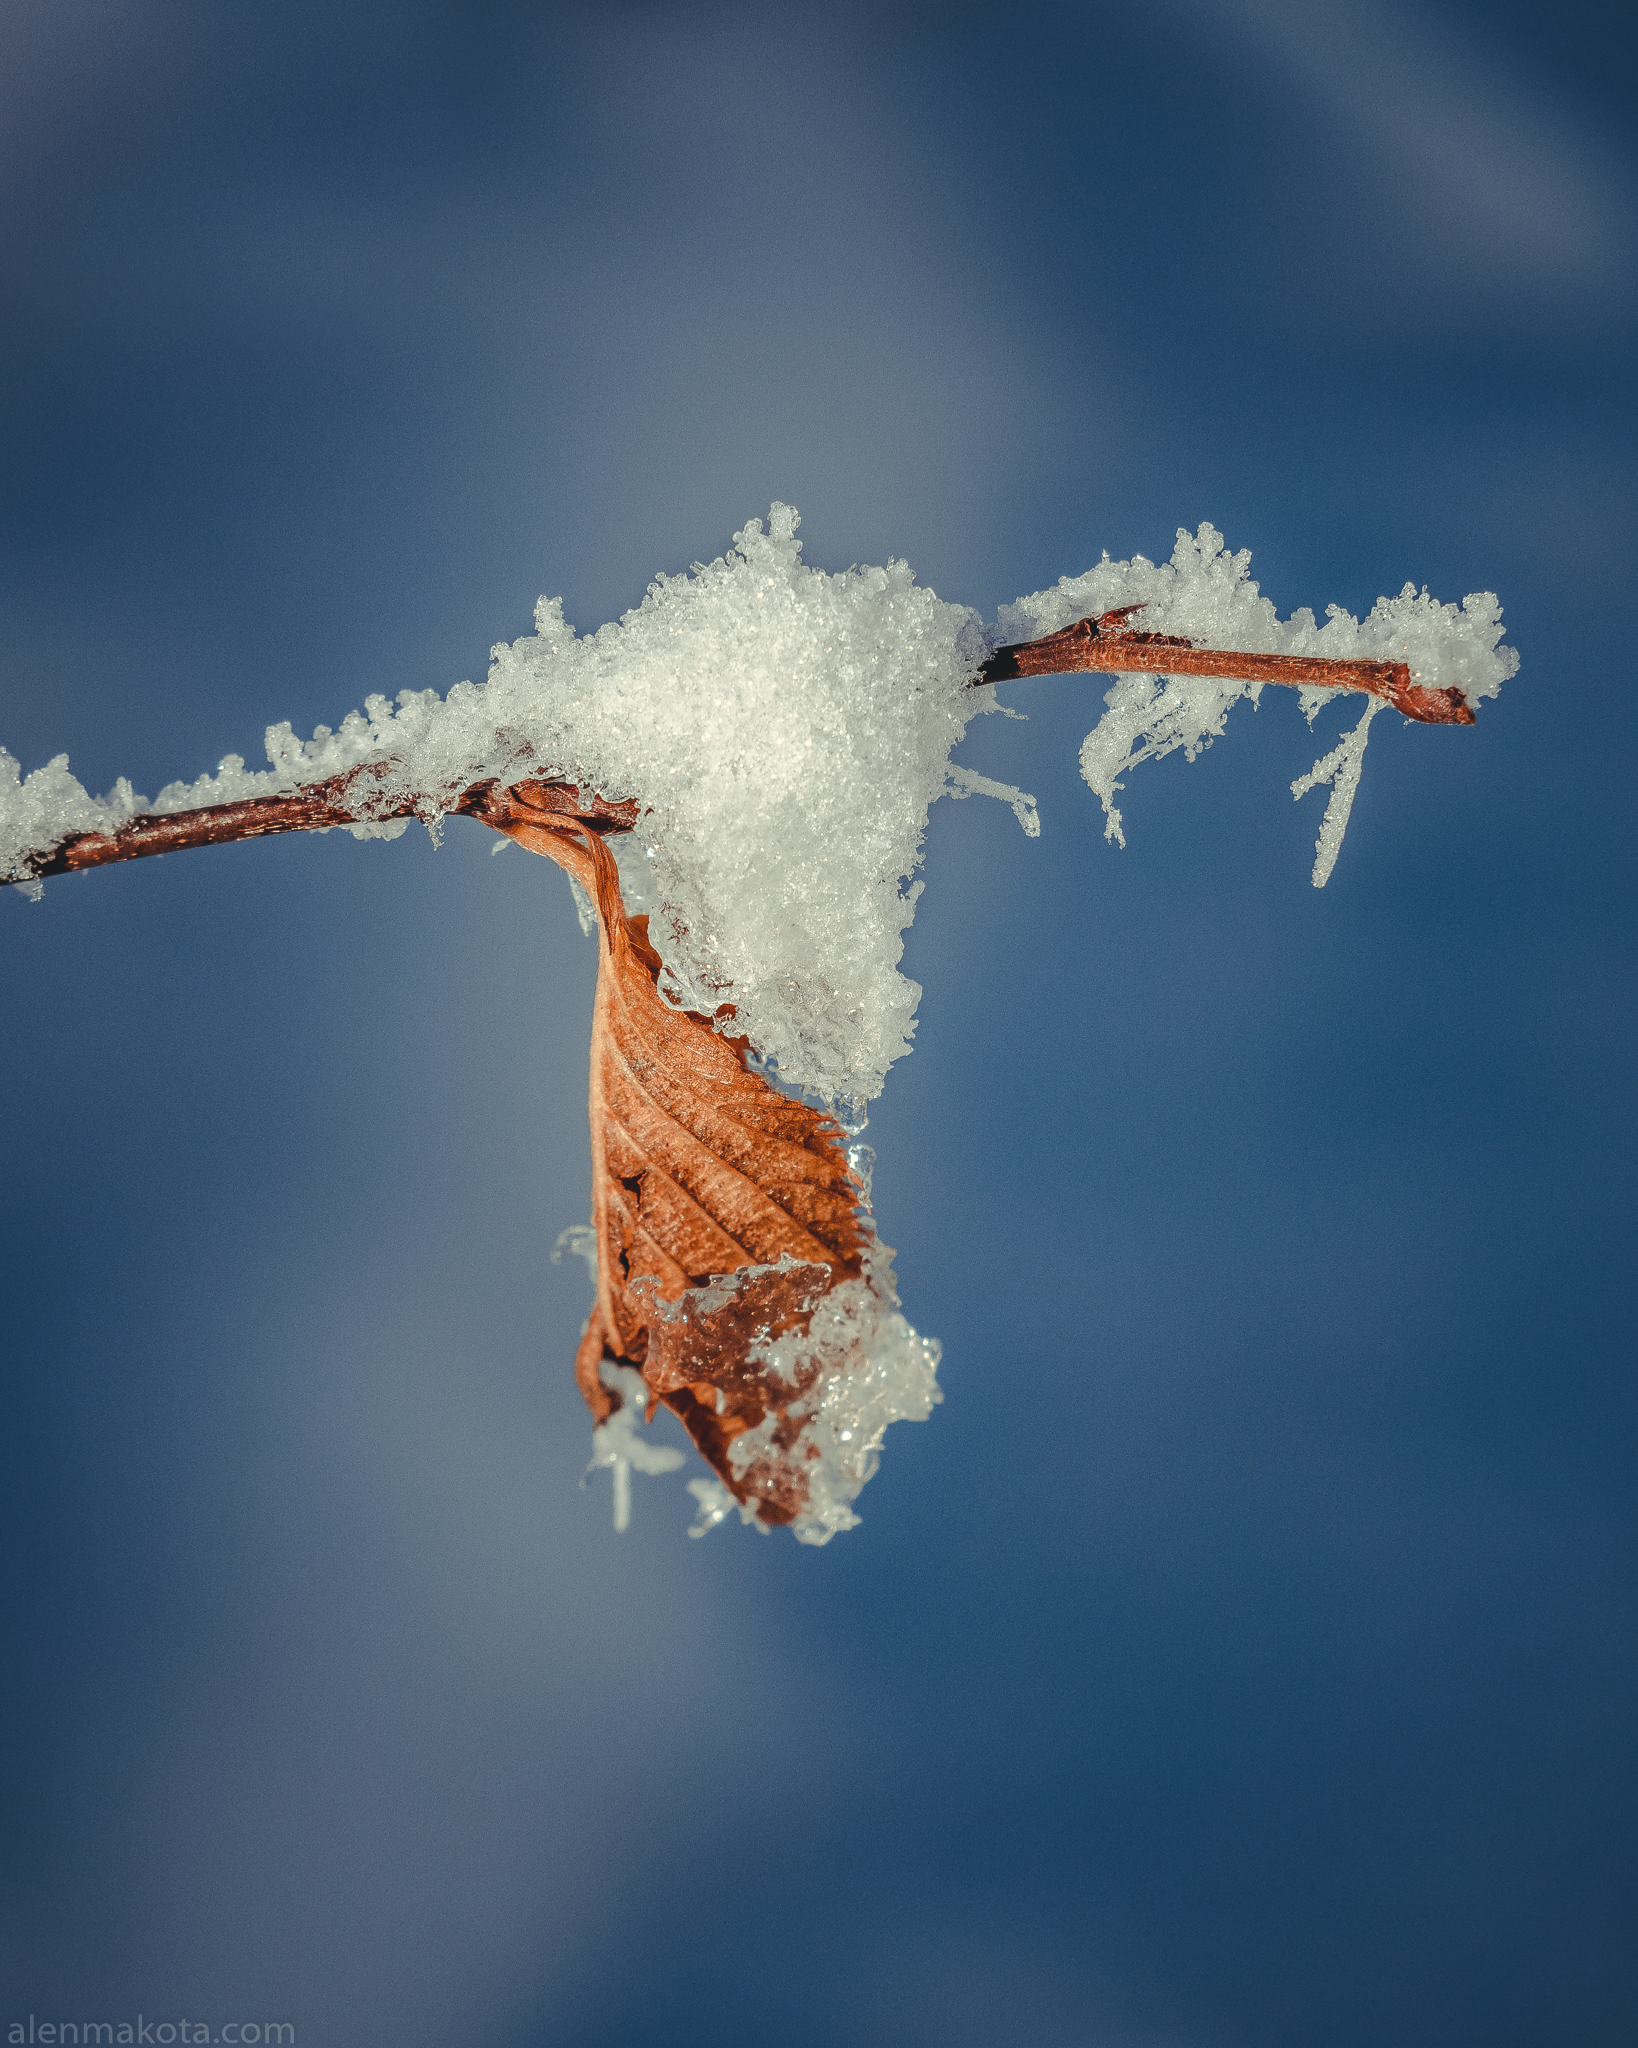 Snow on Dead Leaf